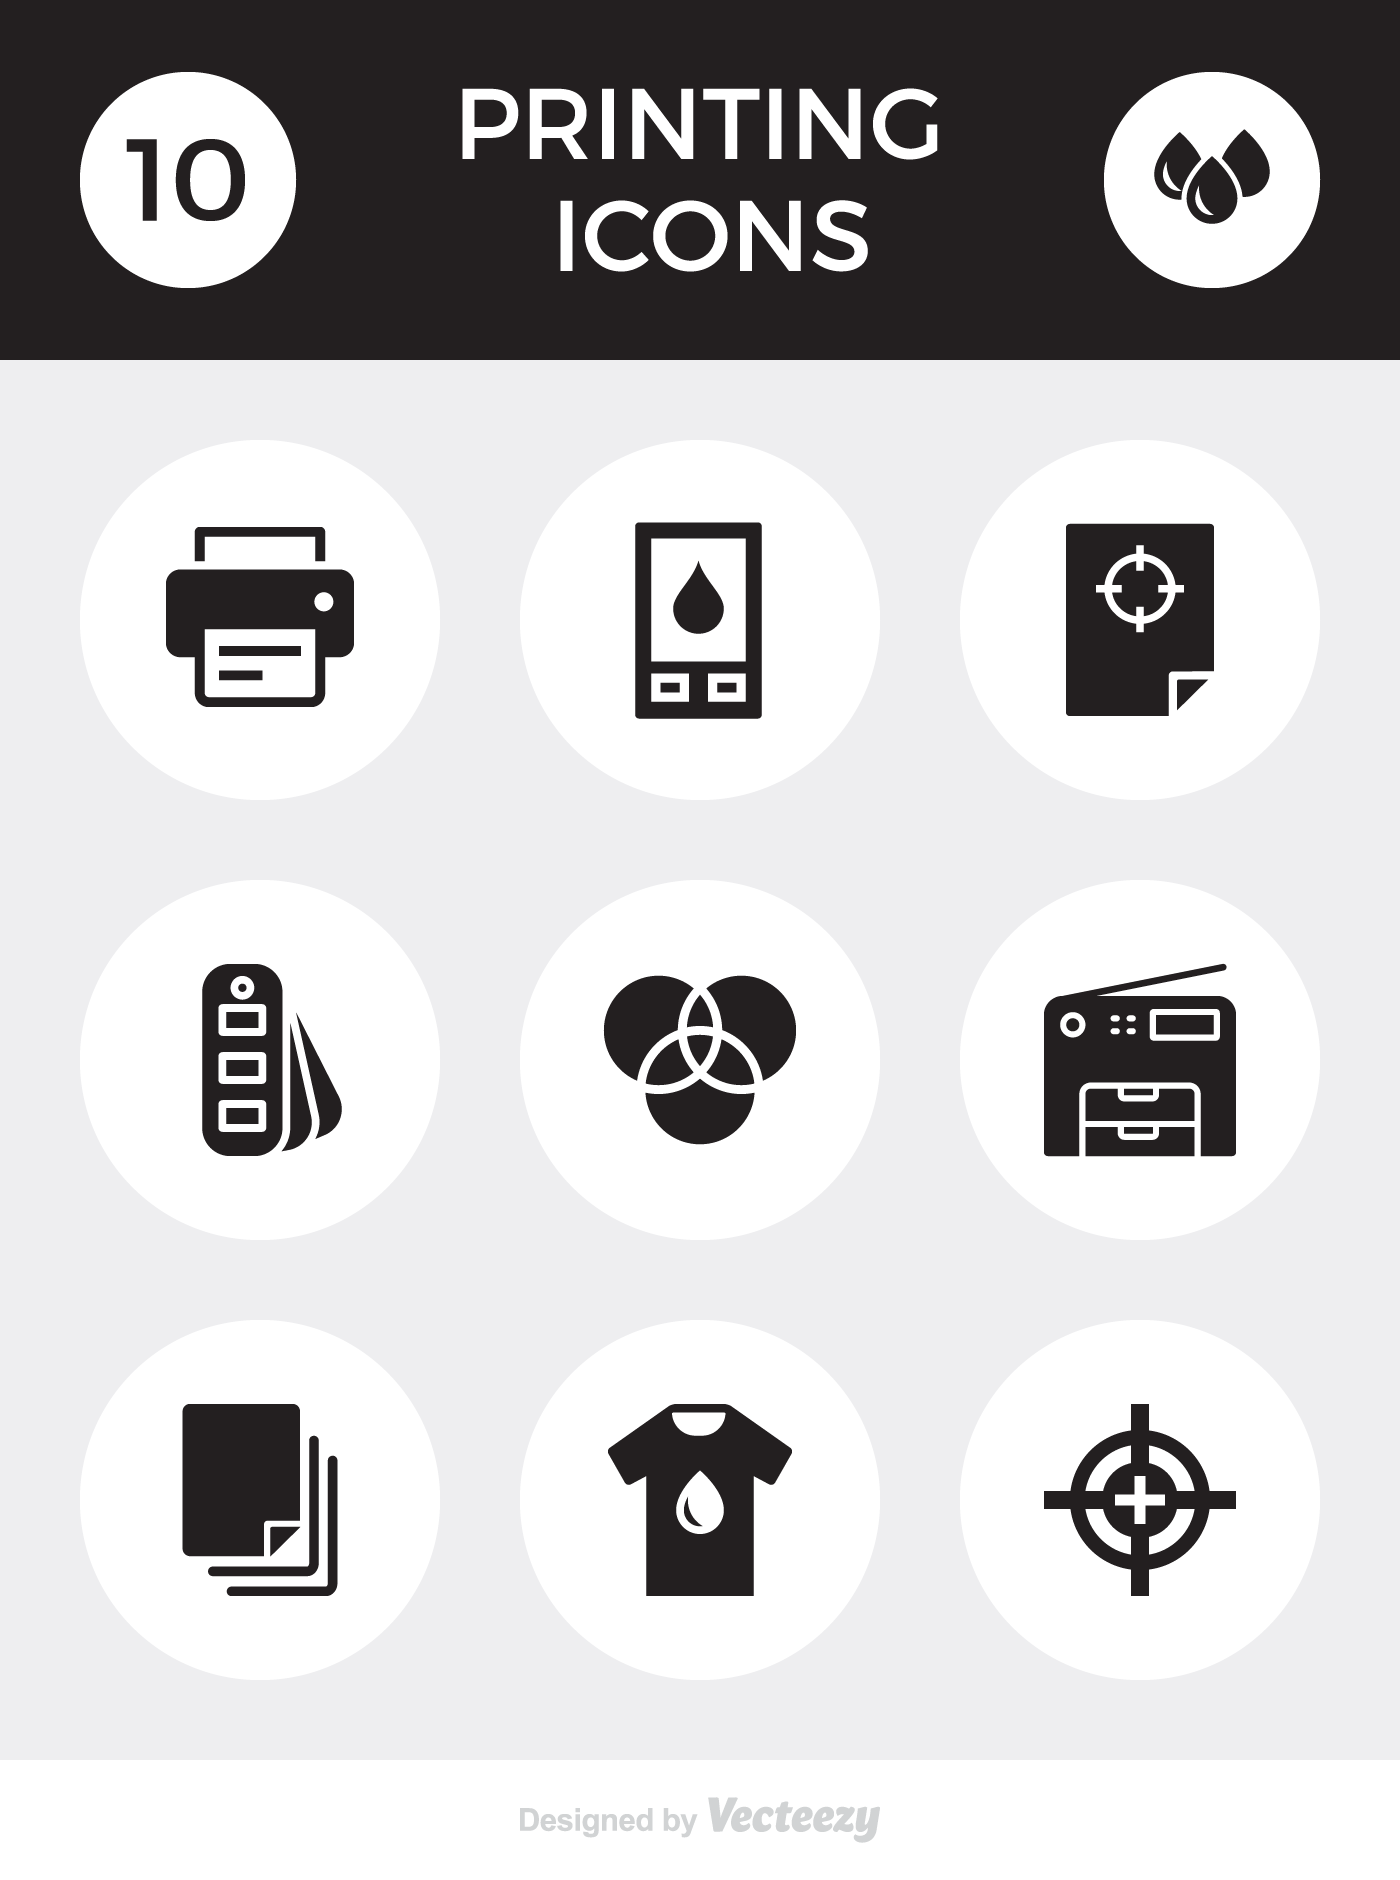 Freebie: 10 printing icons by Vecteezy